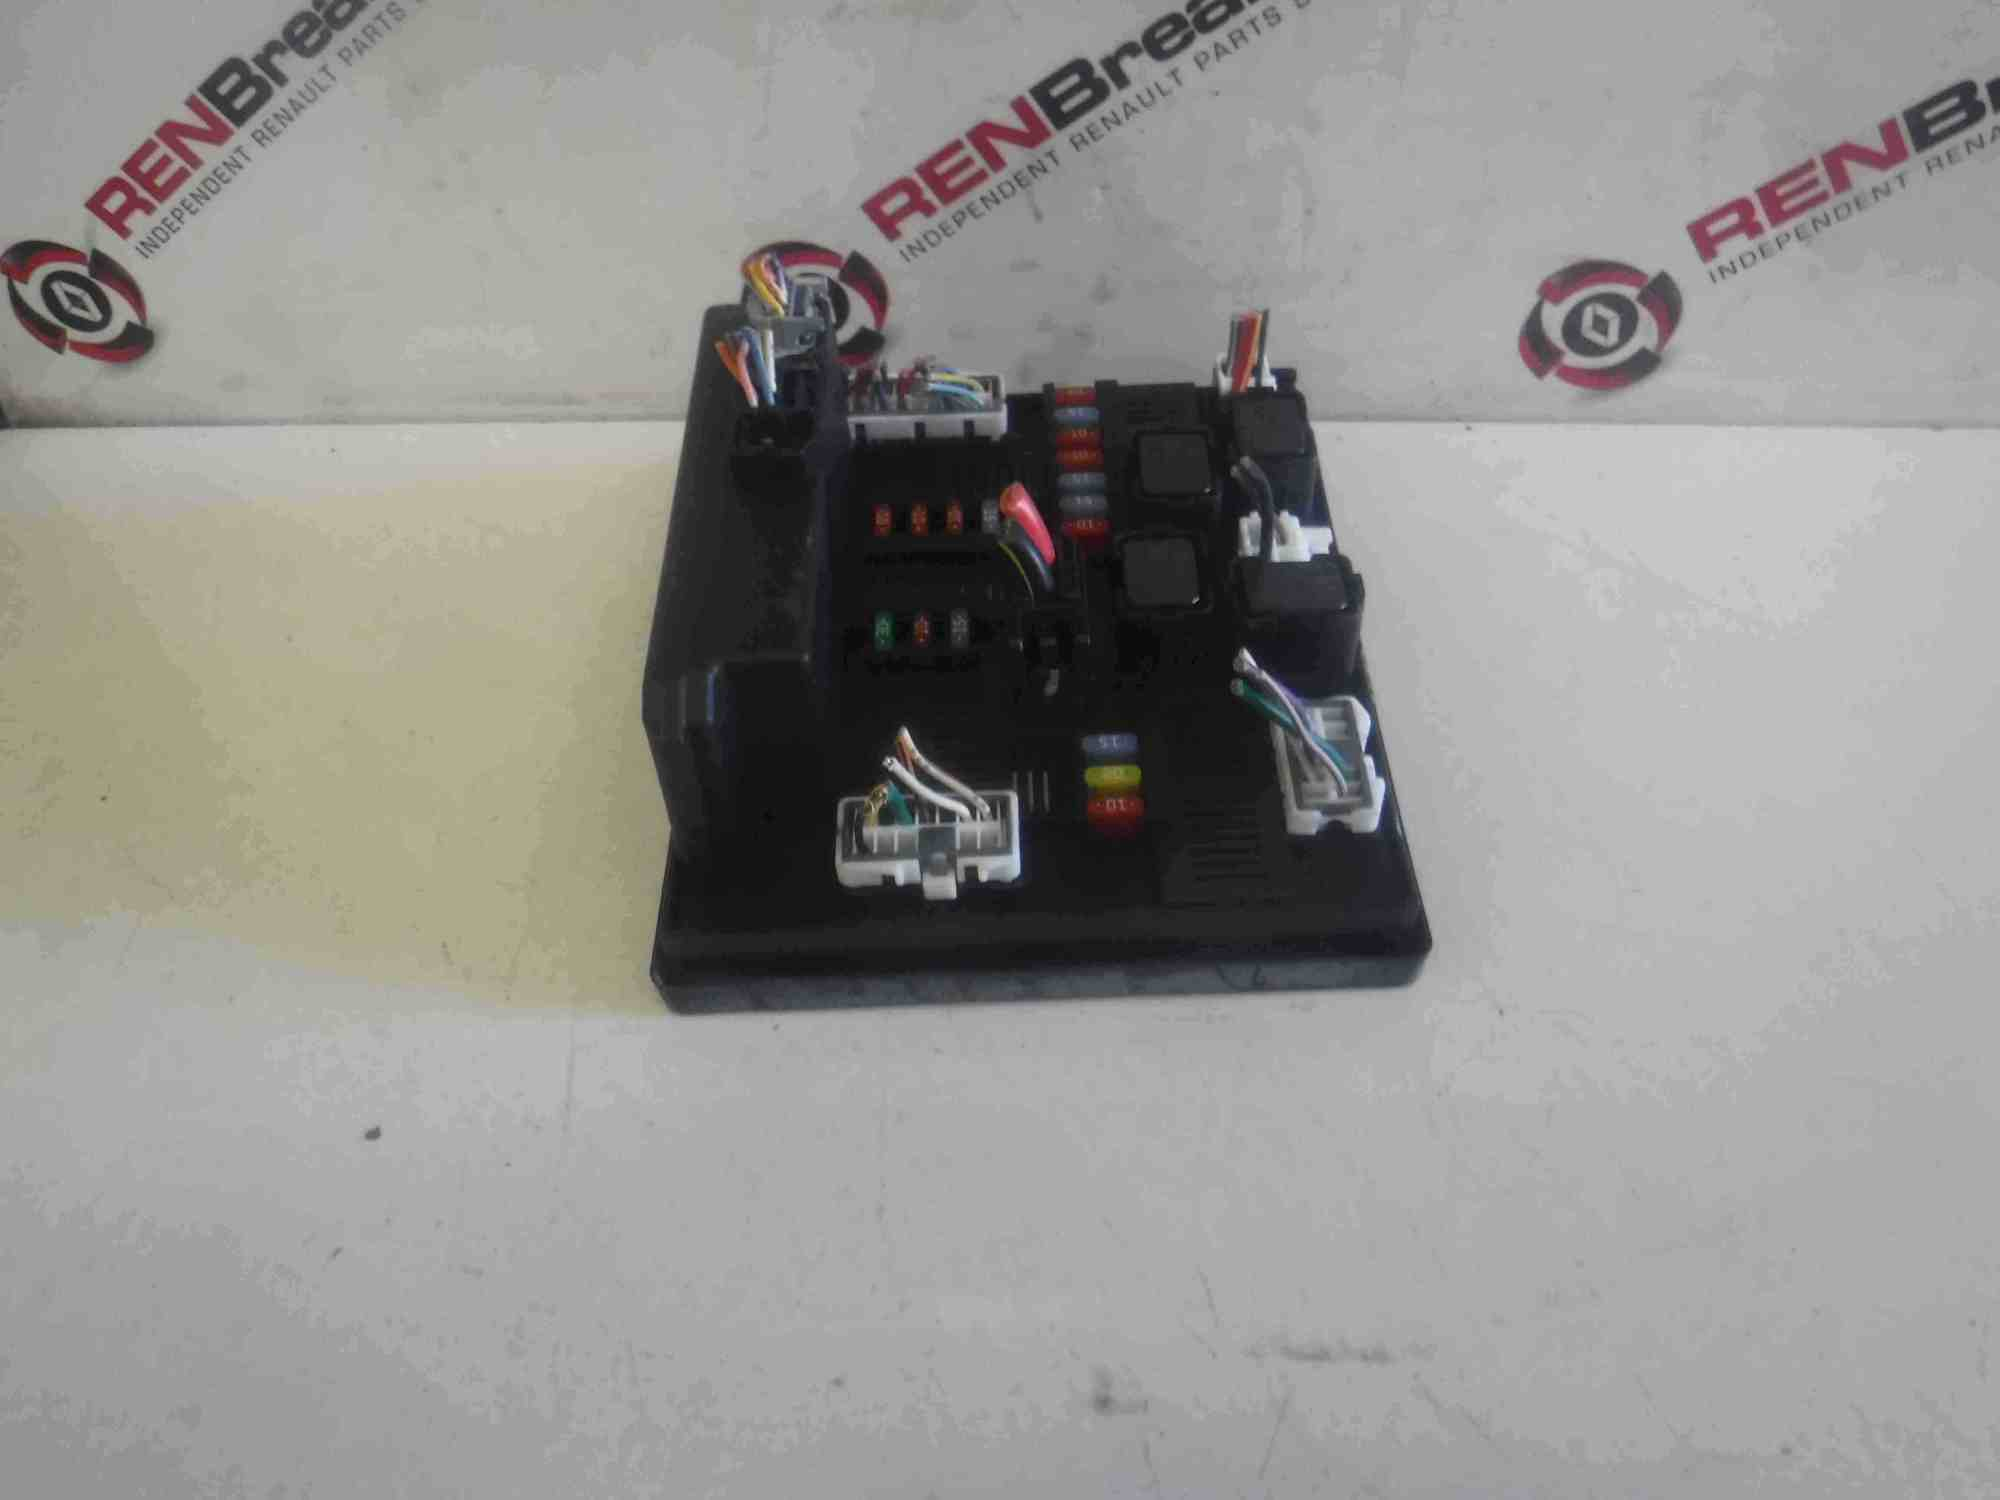 hight resolution of renault koleos 2008 2015 under bonnet fuse box 284b7jy00a store renault breakers used renault car parts spares specialist